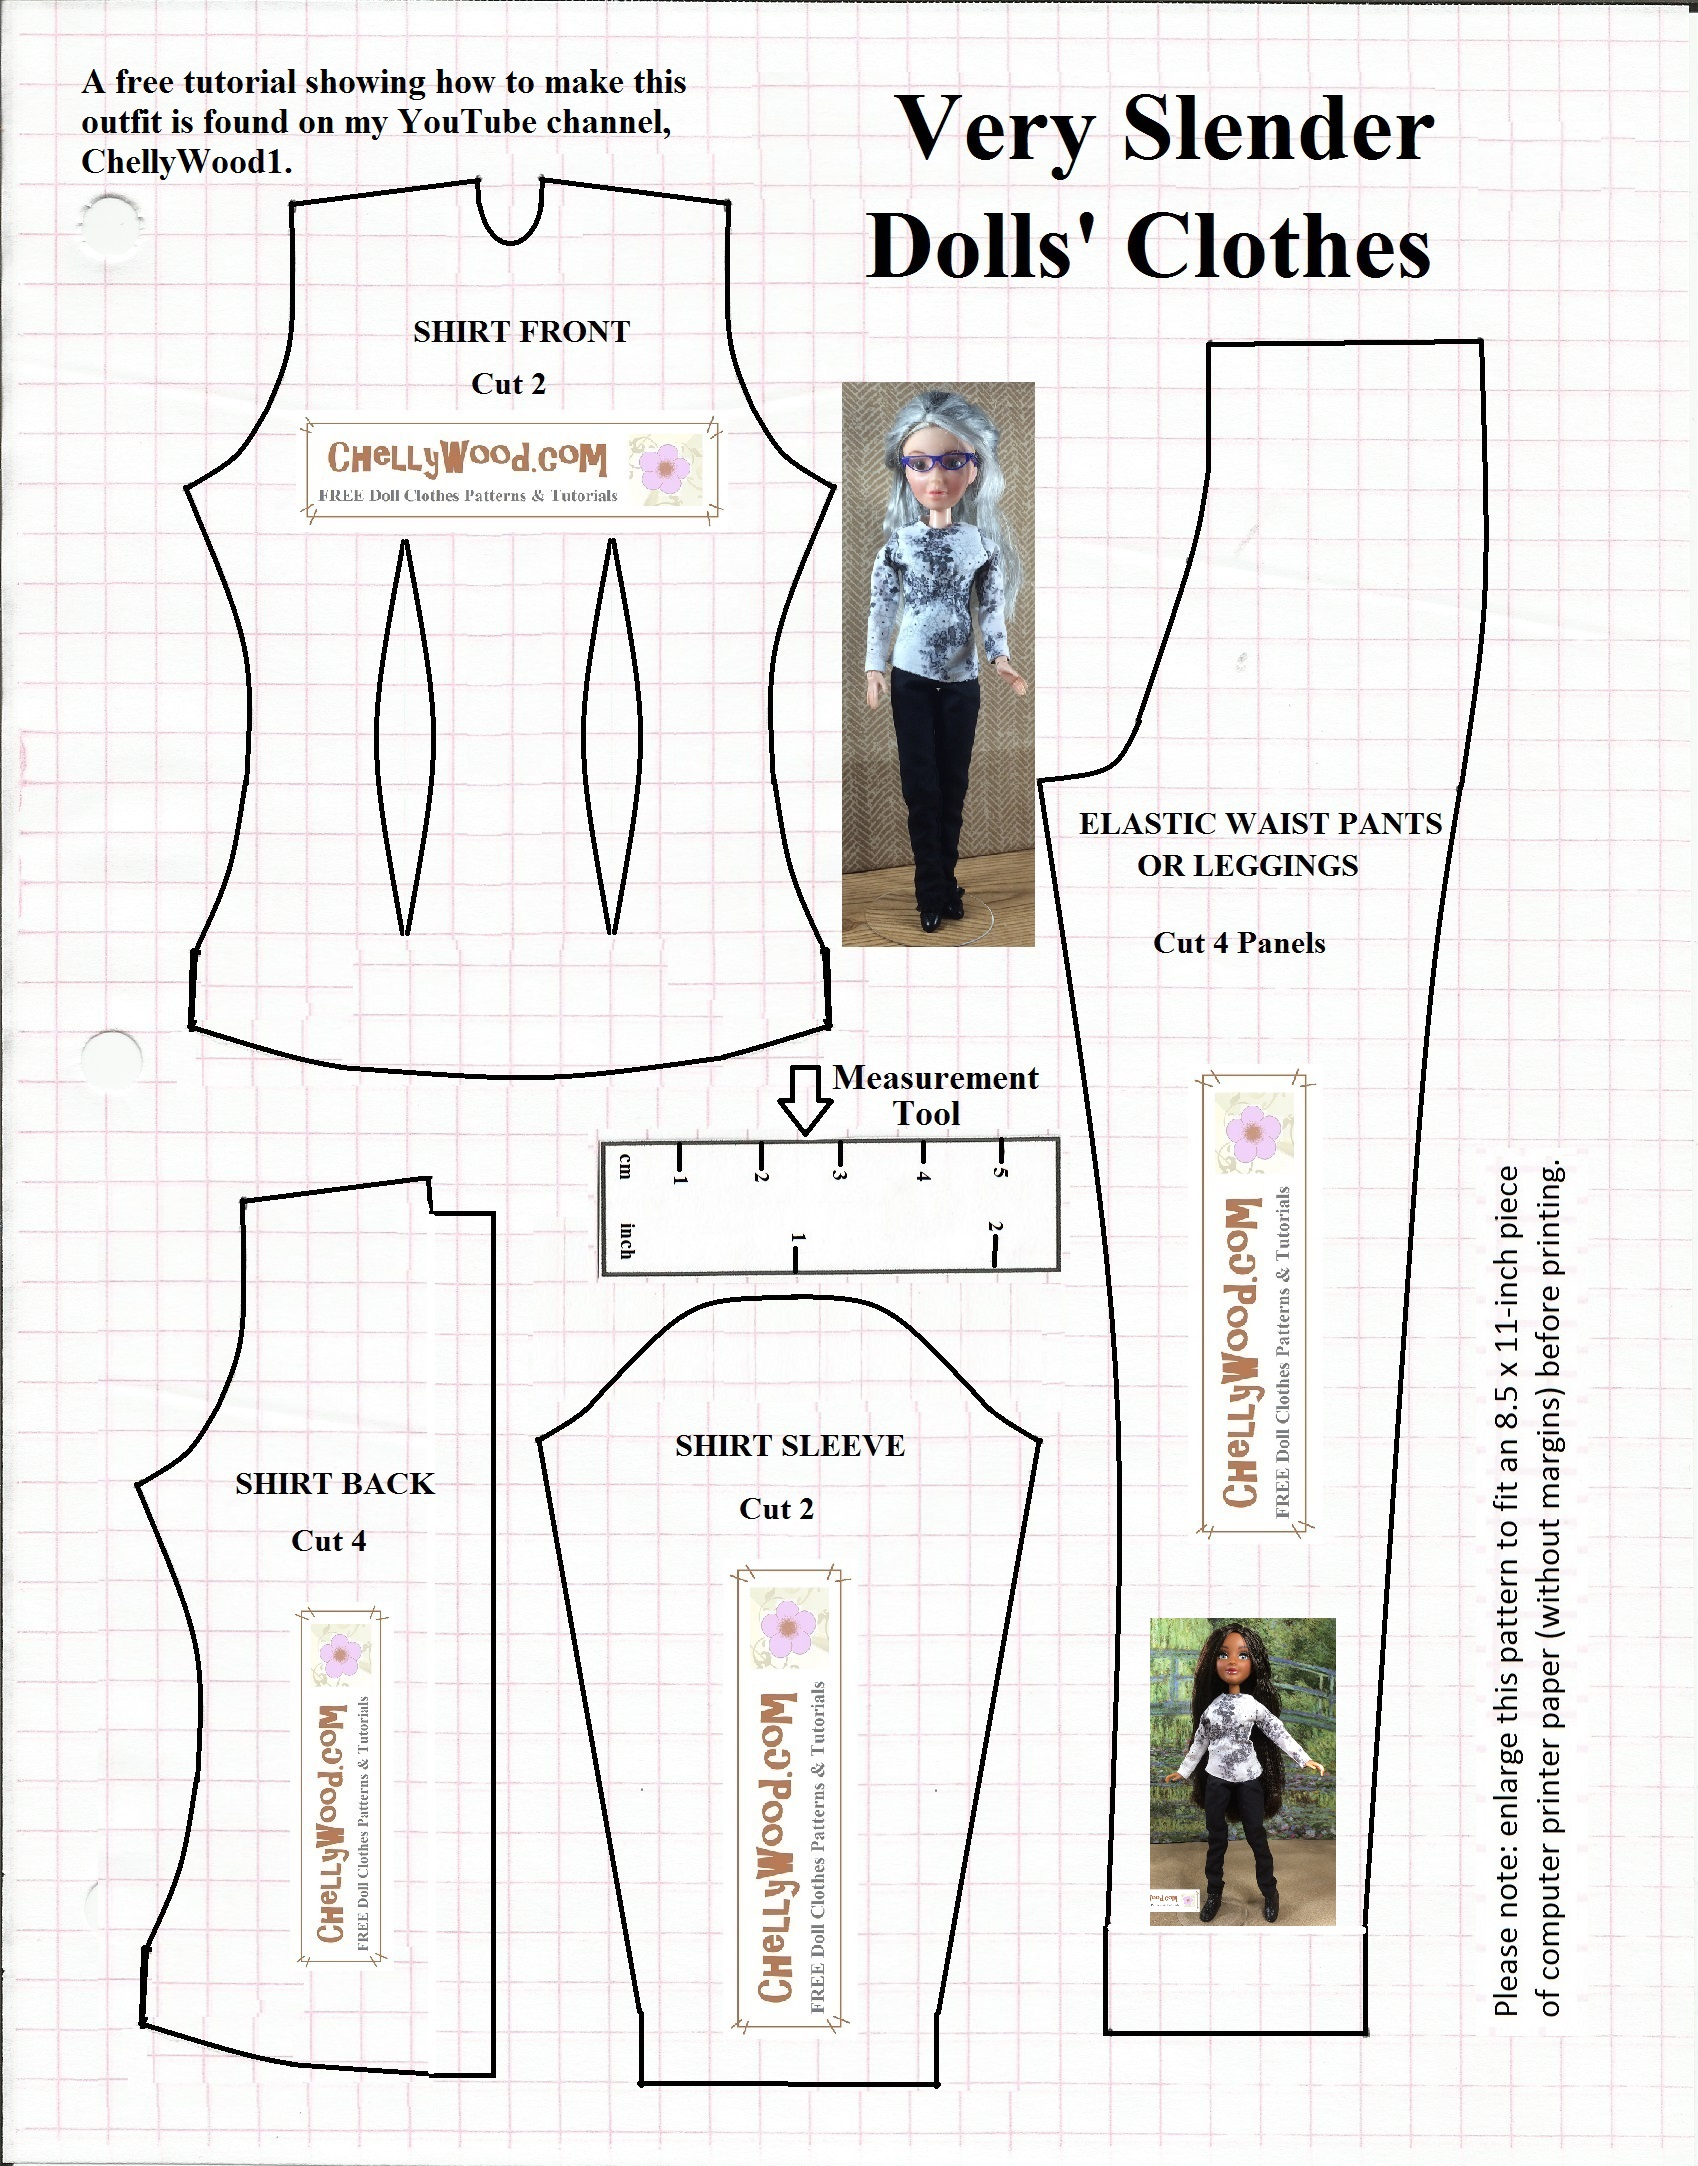 Daily patterns chelly wood free printable sewing patterns for project mc2 dolls and liv dollsmfogelsongplease visit chellywood for jeuxipadfo Gallery